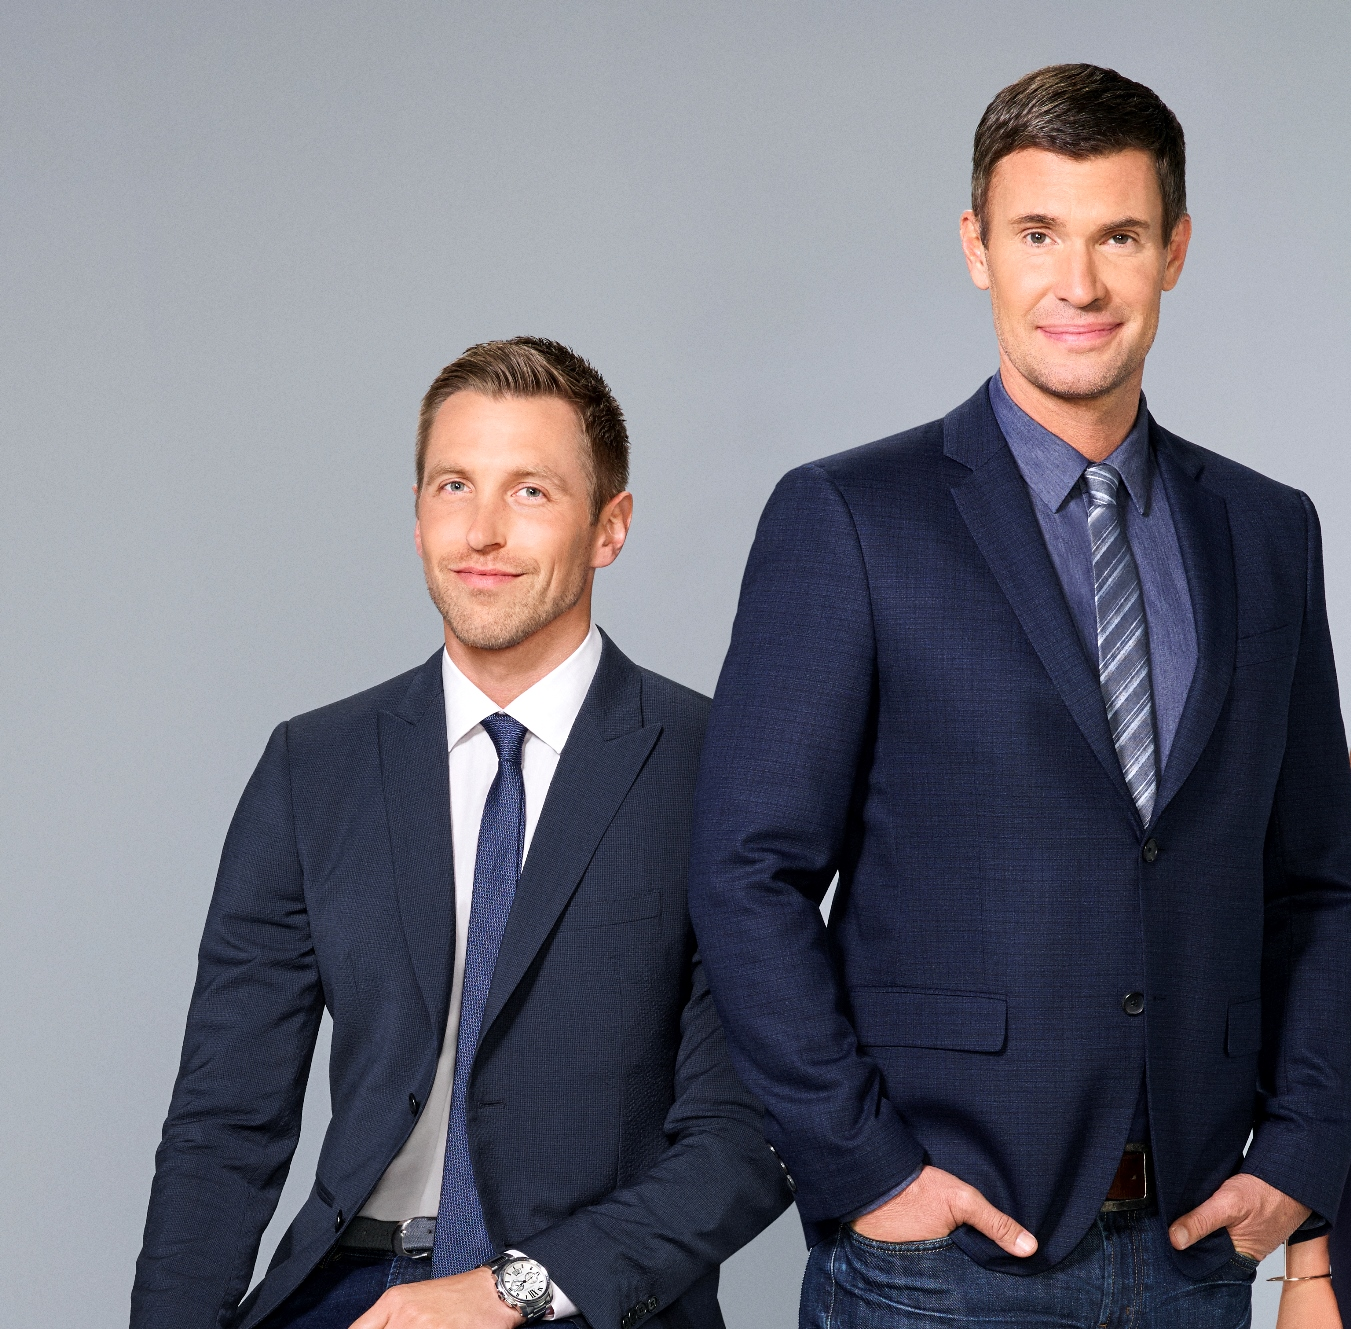 Flipping Out's Gage Edward Slams Jeff Lewis for 'Harassment' and Claims He Has 'Full Intent' to Destroy His Character After Split